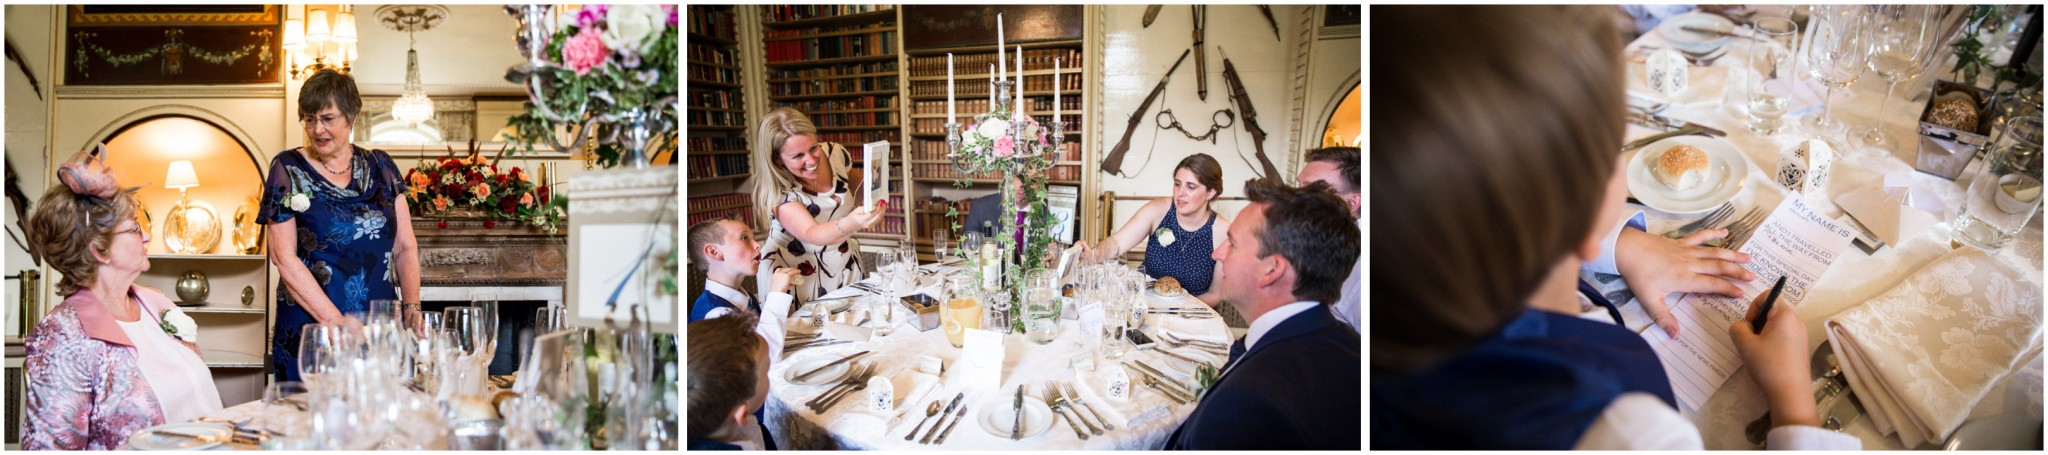 Avington Park Wedding Guests Before the Wedding Breakfast